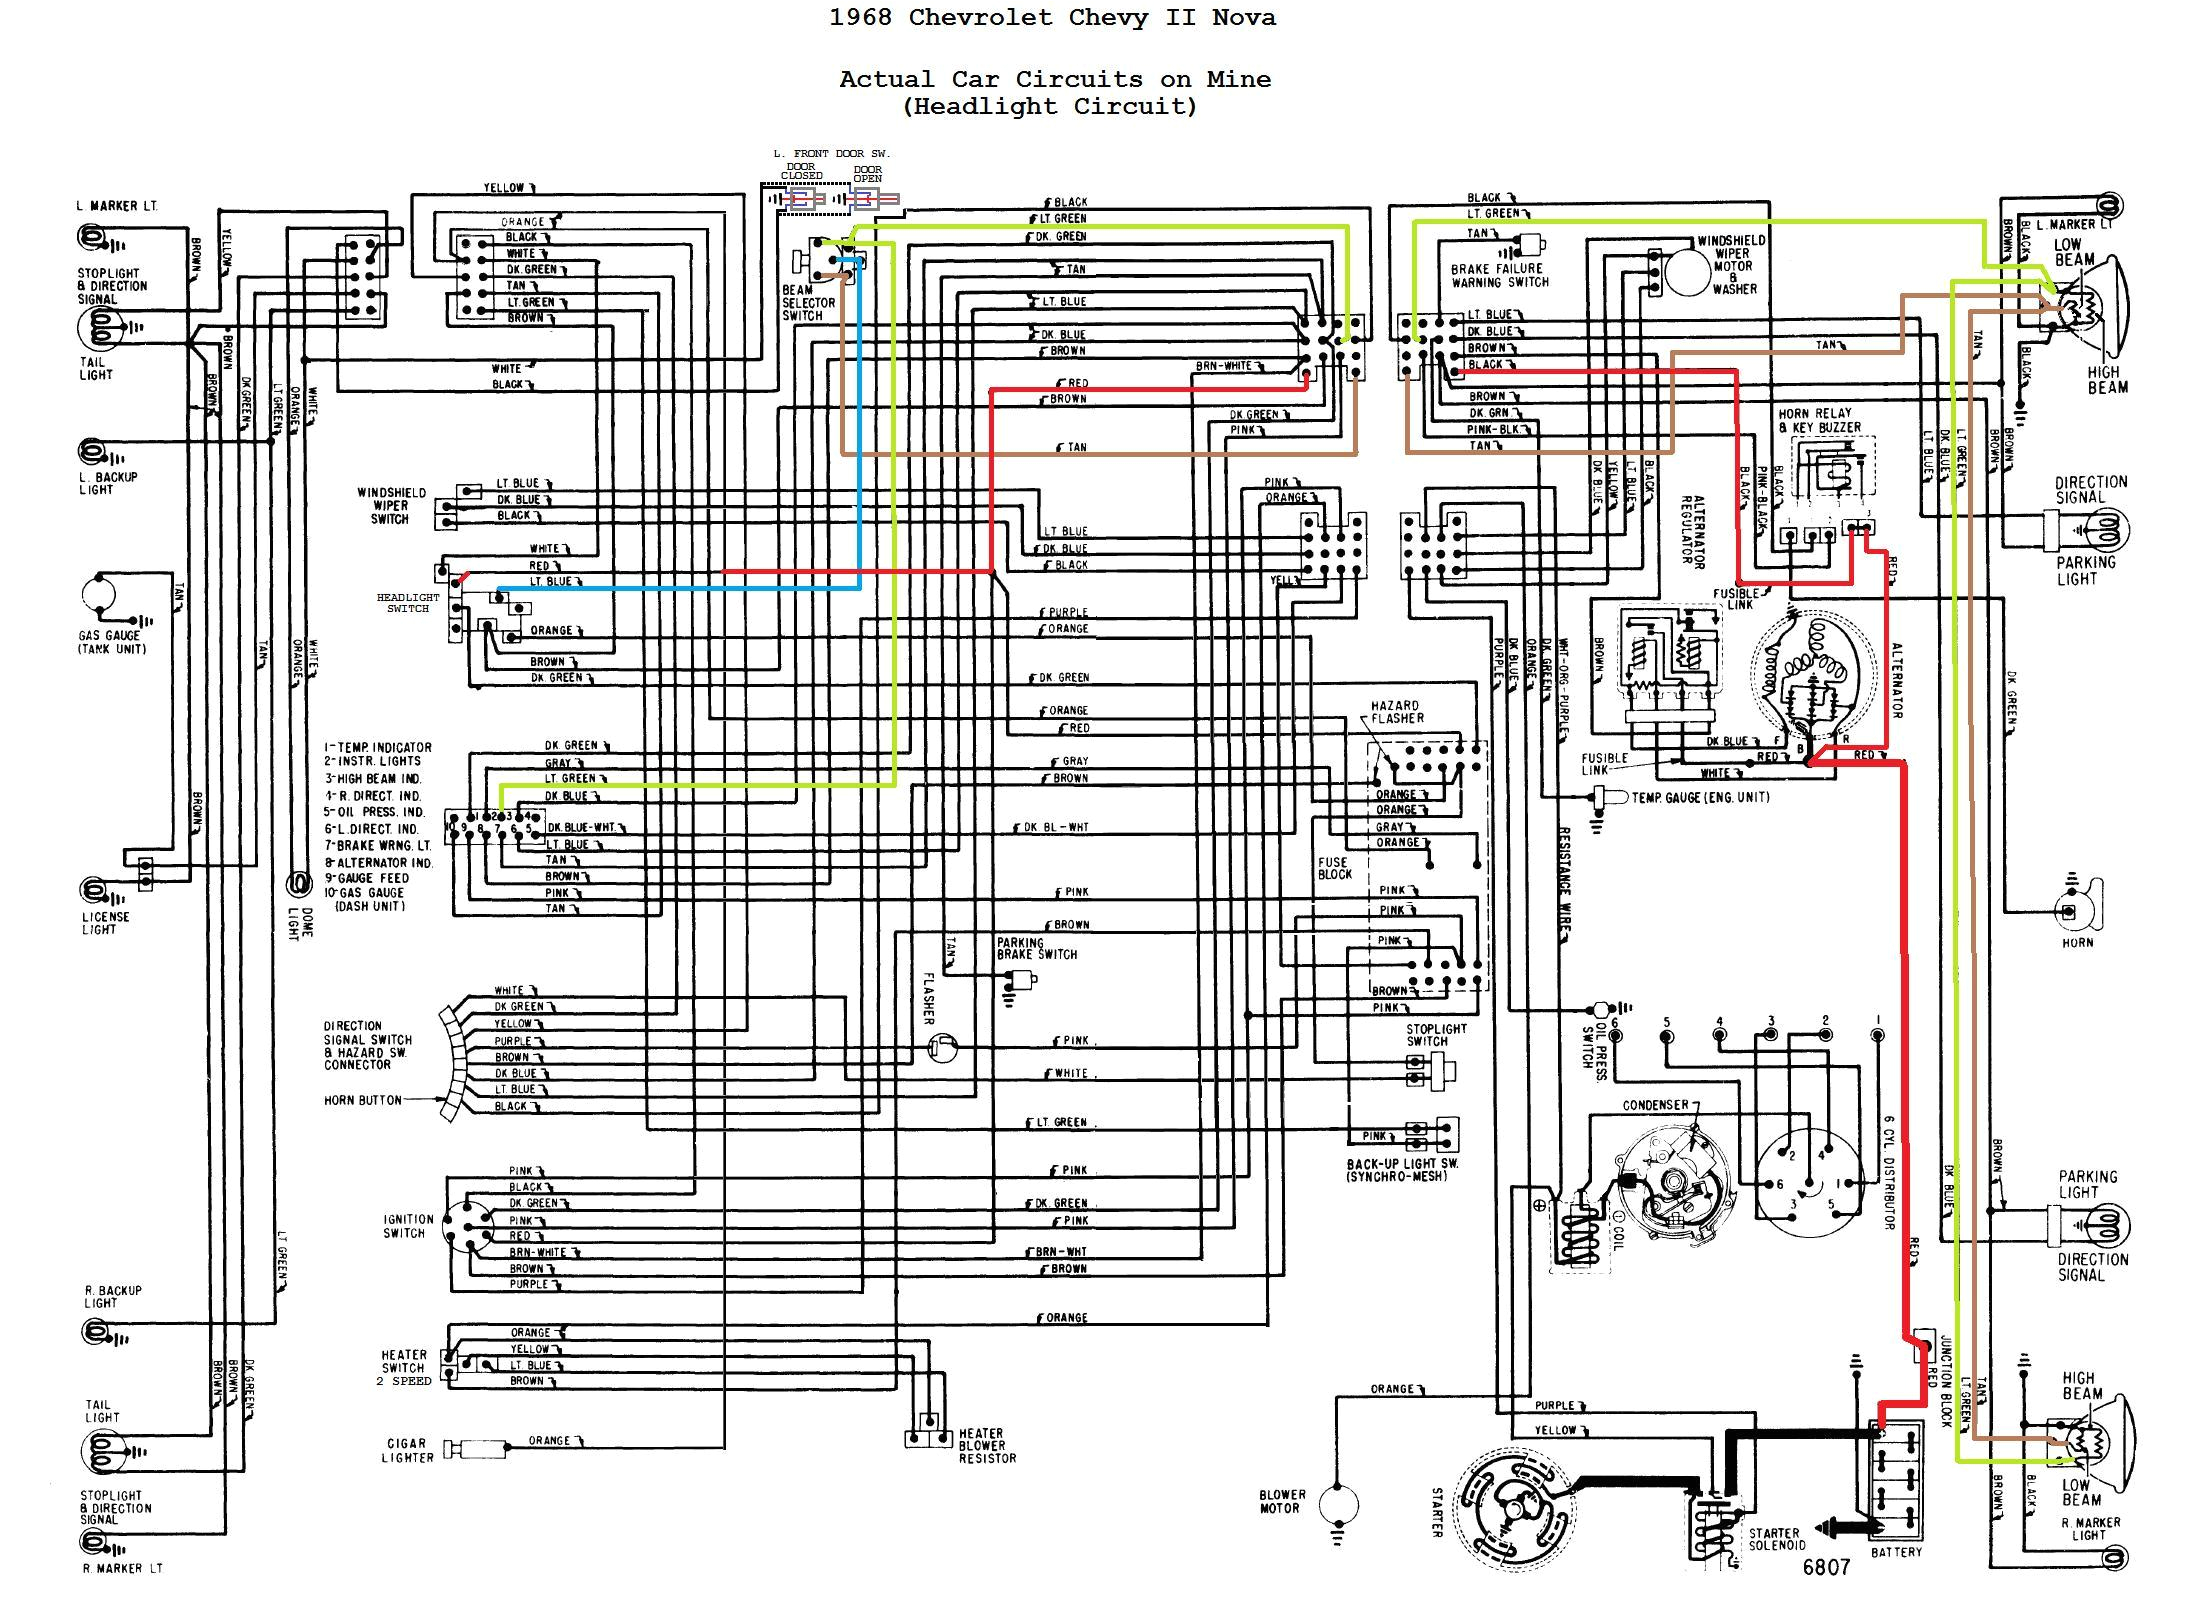 1968 gmc wiring diagram wiring diagram operations 1968 gmc wiring diagram engine compartment 1968 gmc wiring diagram source 1968 chevy truck